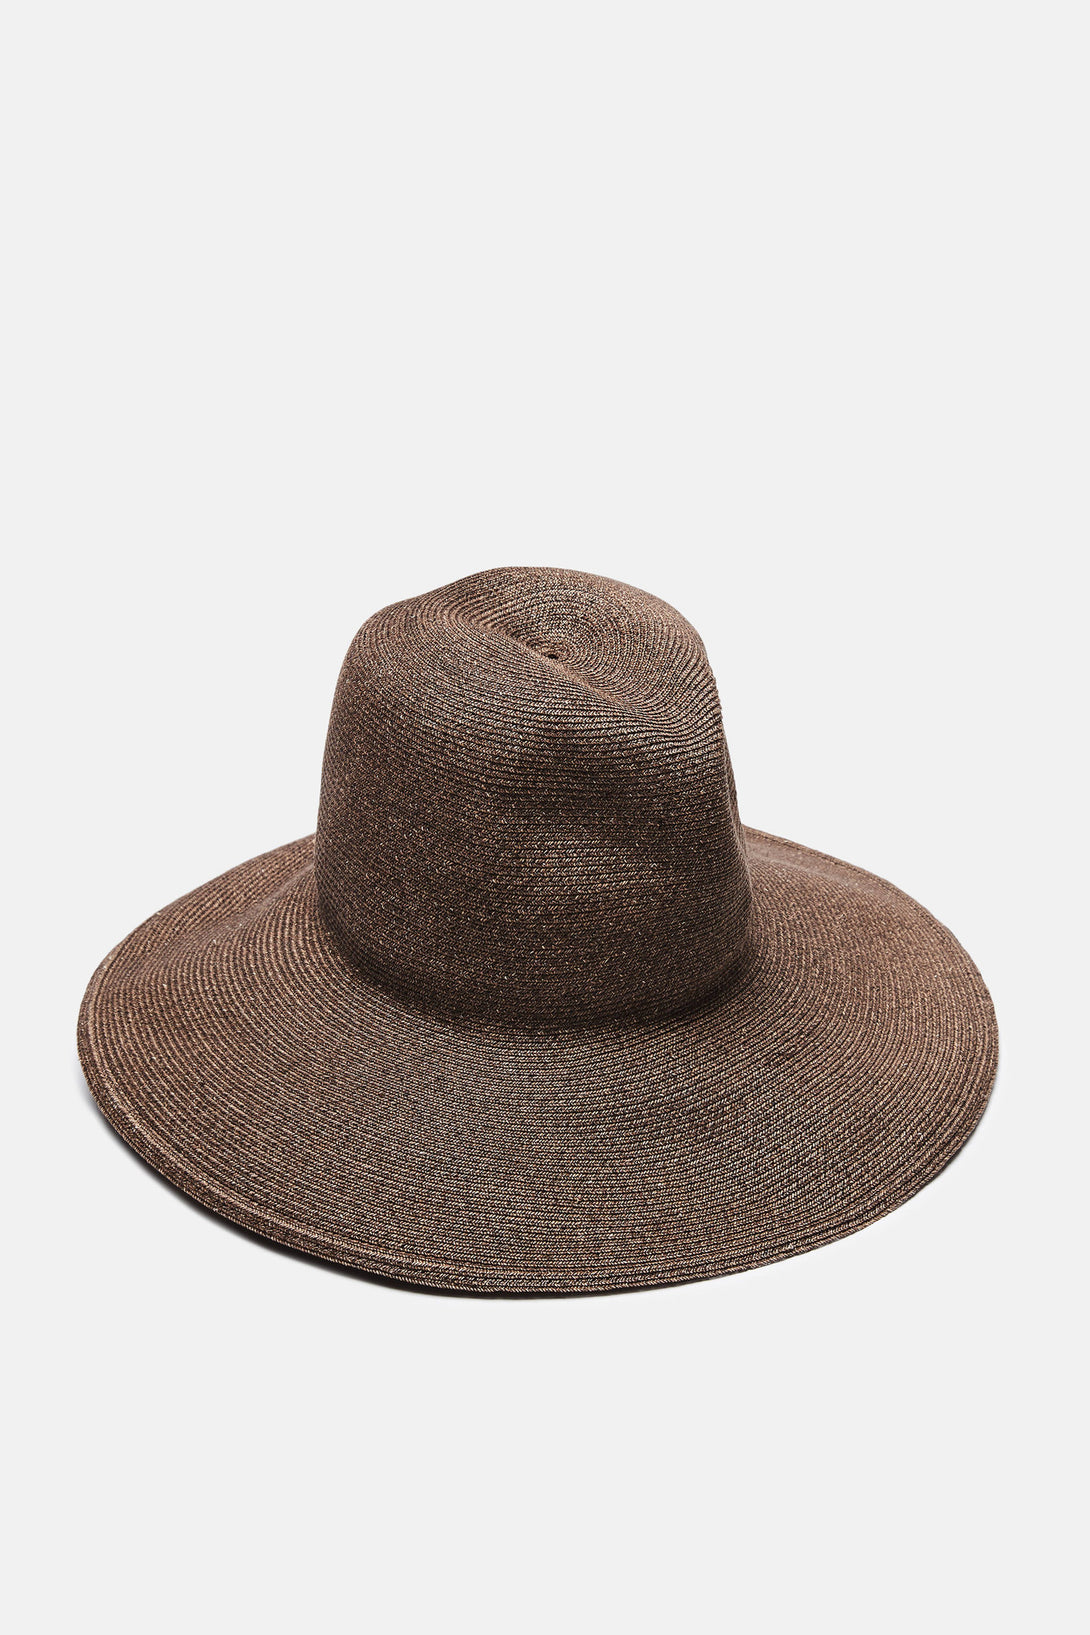 St Lucia Wide Brimmed Hat - Brown